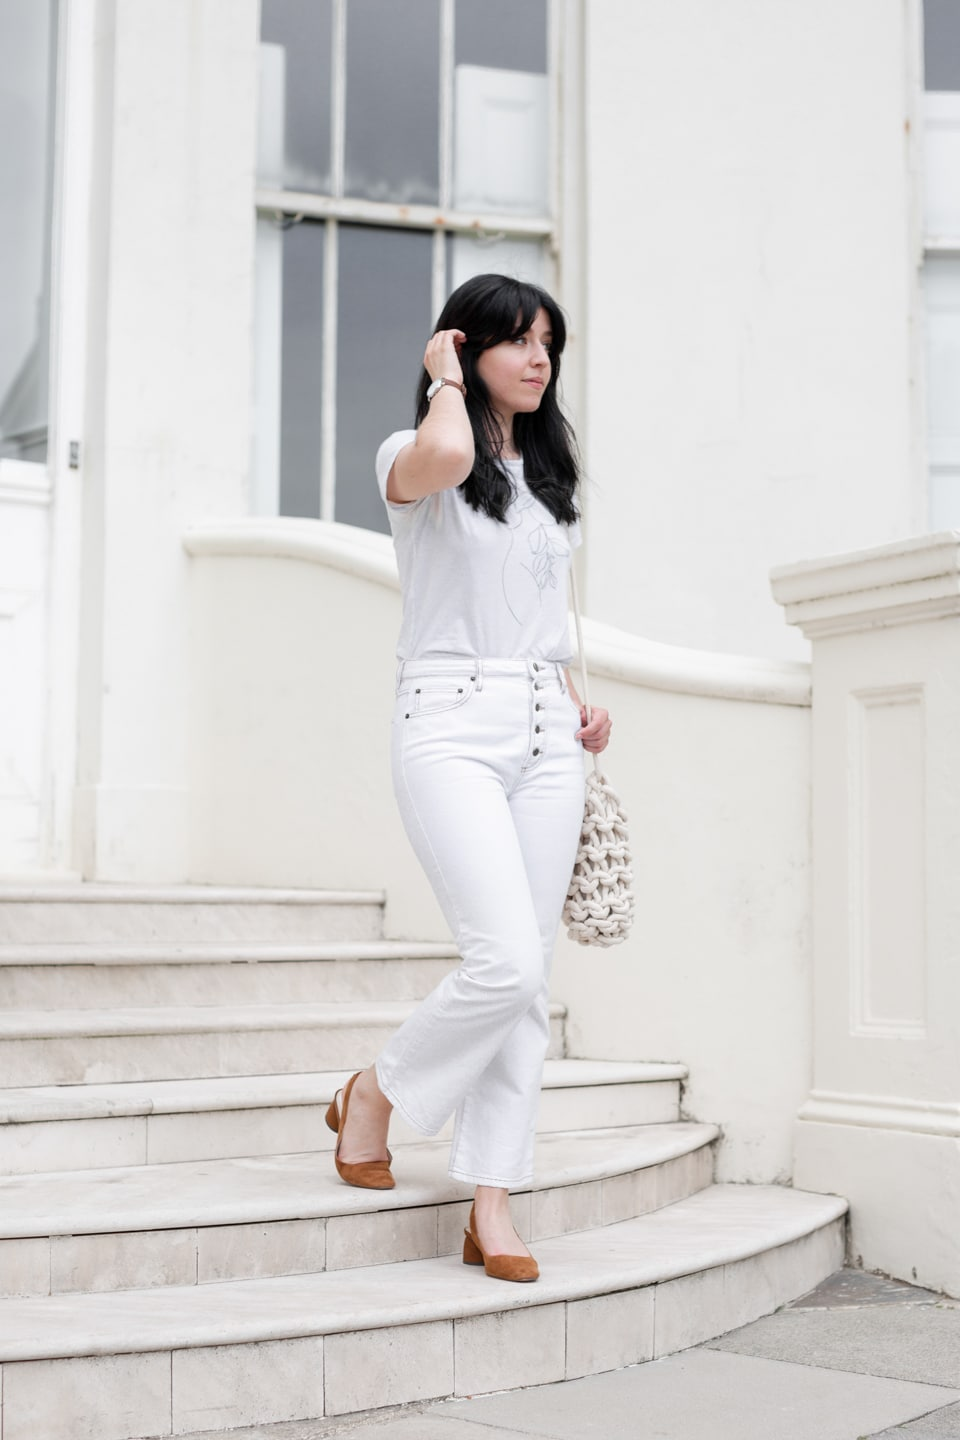 Besma wearing white t-shirt and jeans with Solios Watch